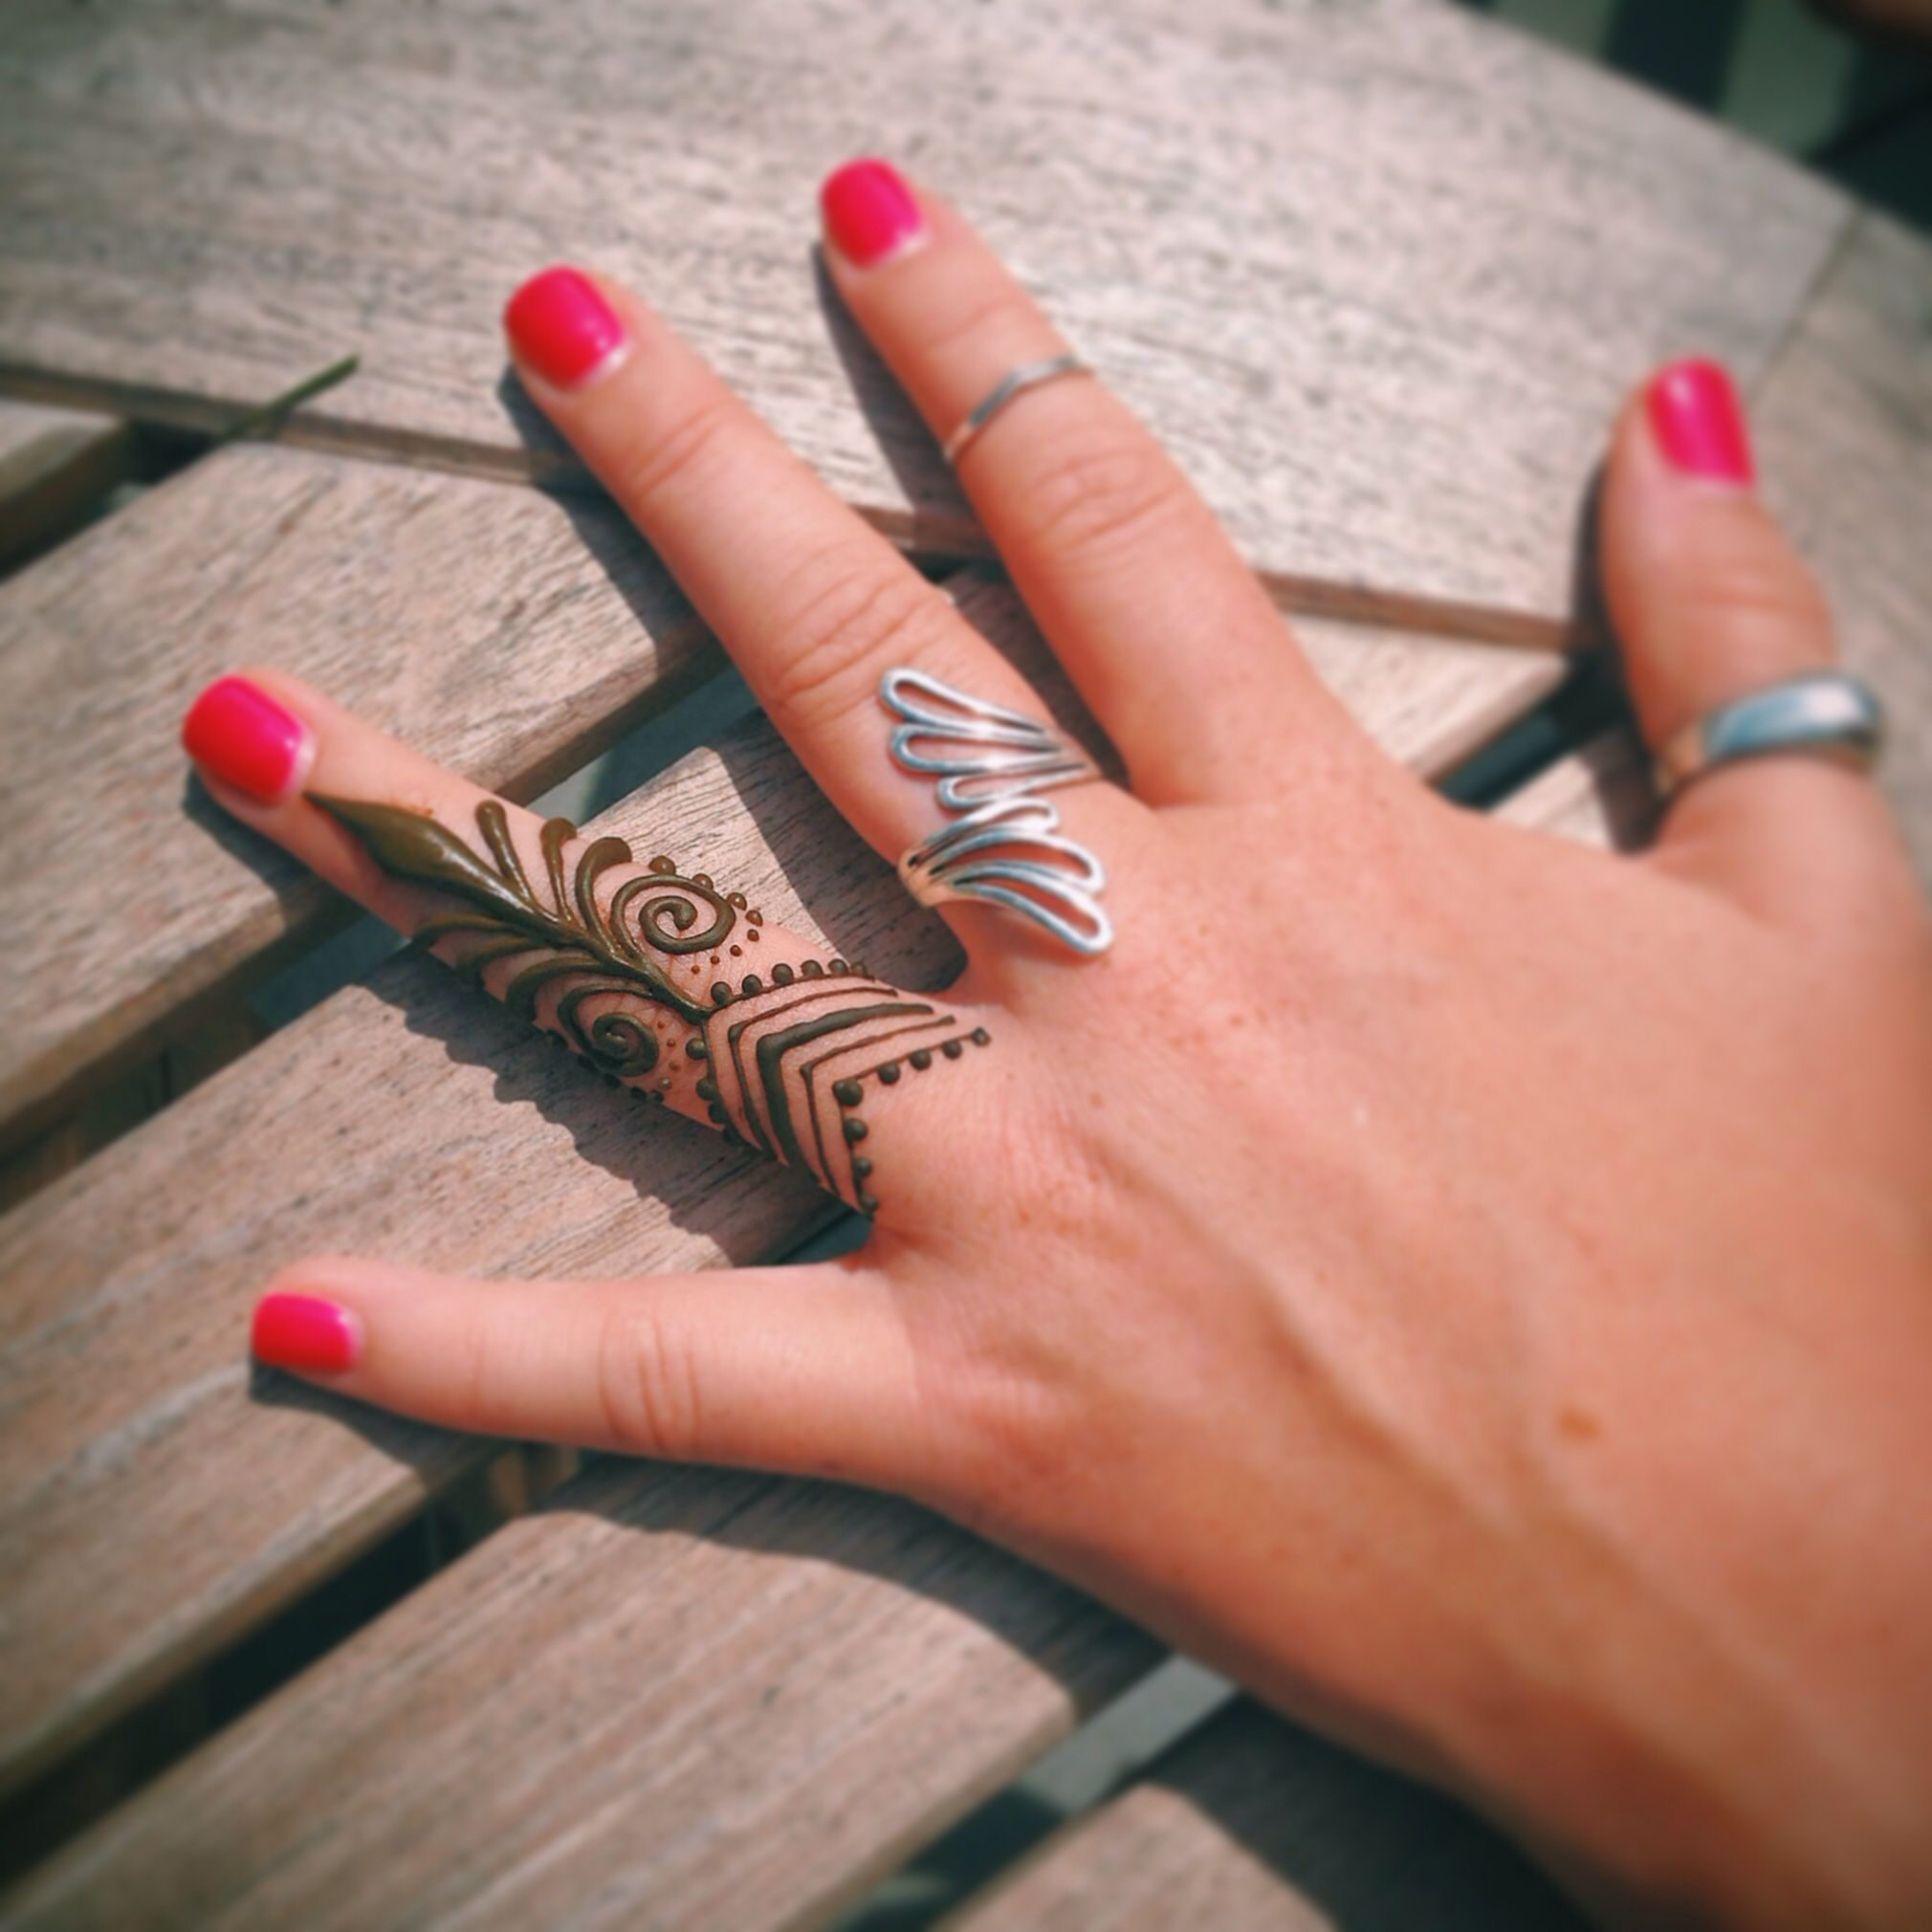 Henna Tattoo Ring Designs: Henna By Erin Malaspino. Finger Ring Piece.